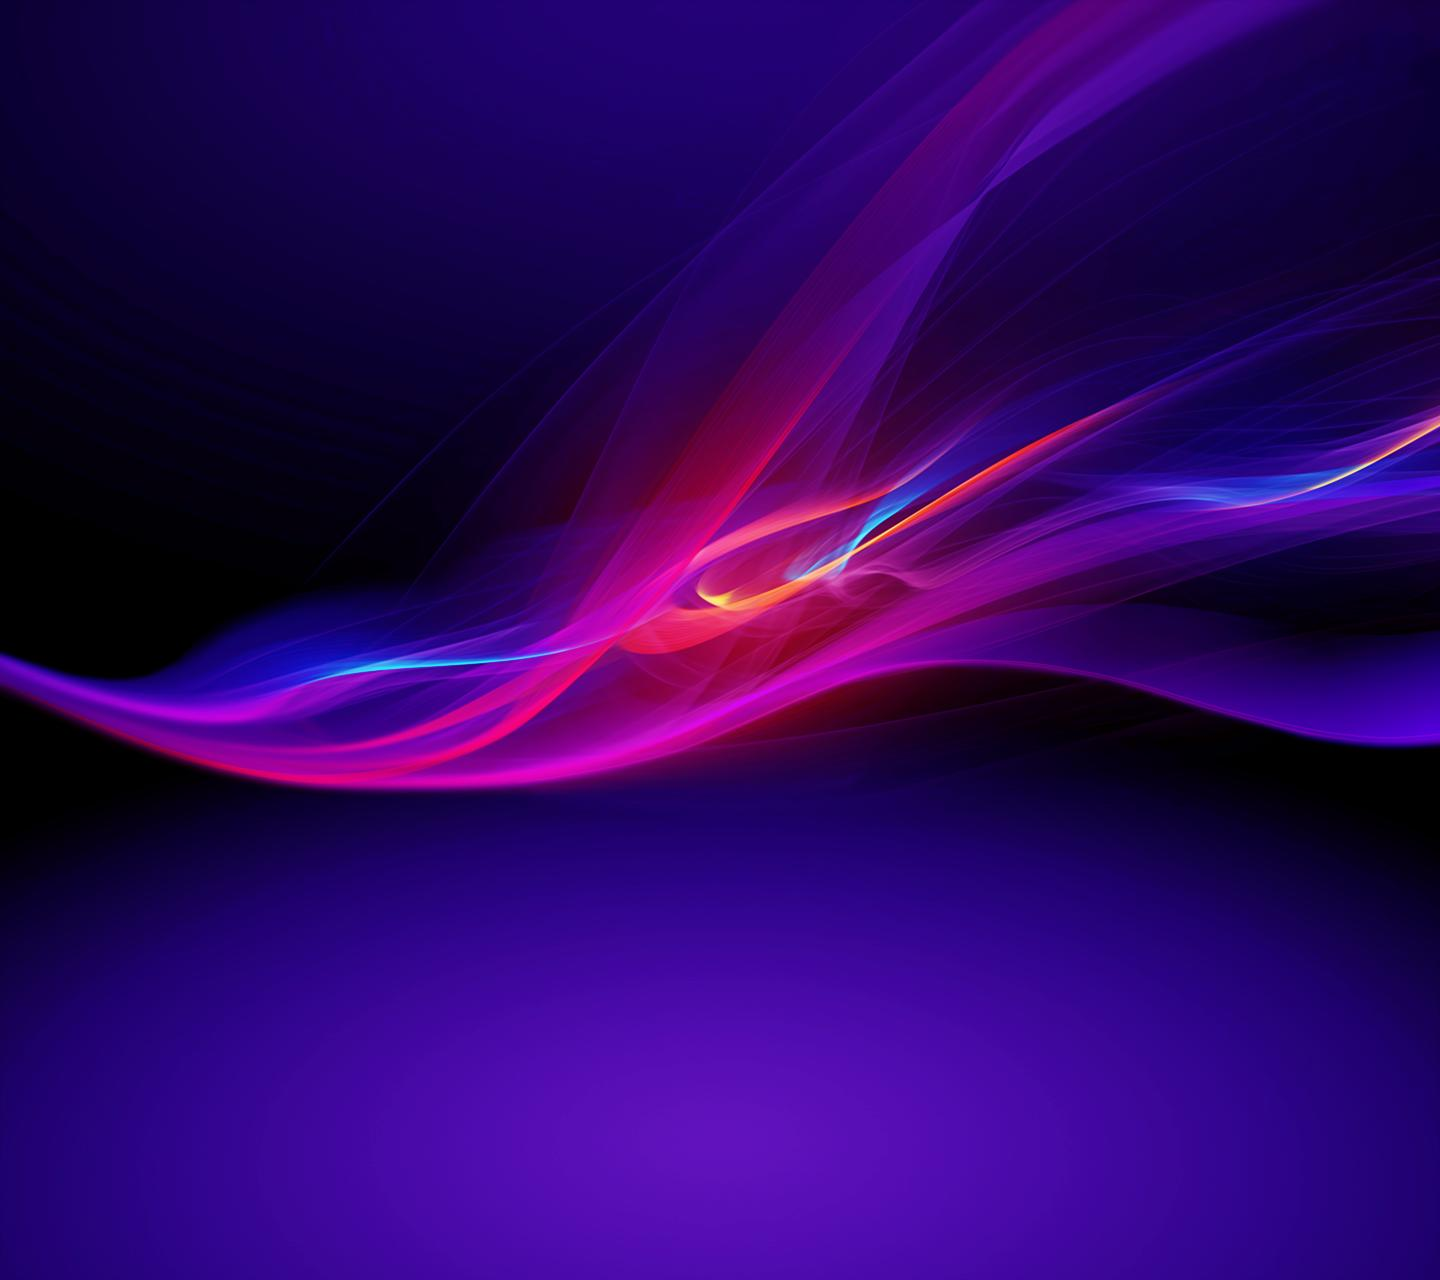 Sony Wallpapers - Top Free Sony